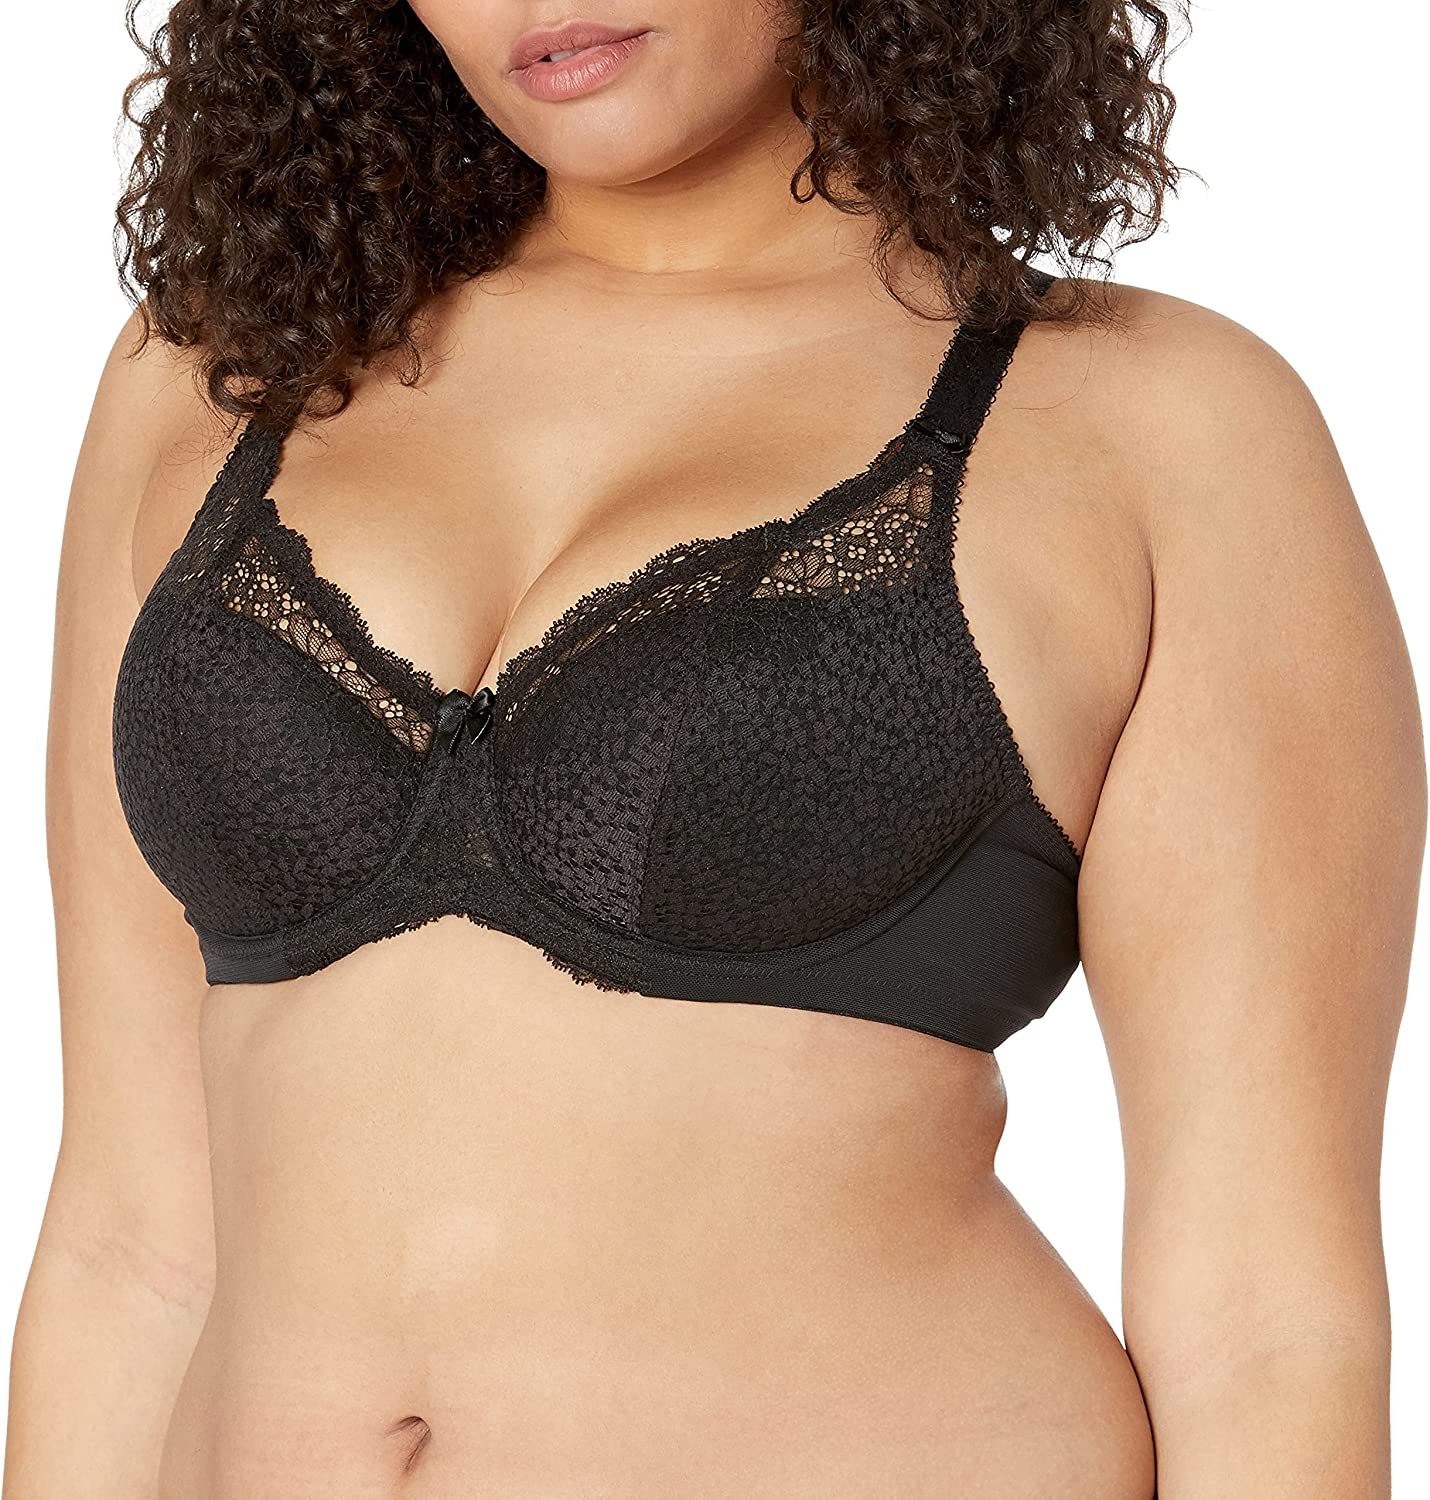 GODDESS Women's Plus Size Max 57% OFF Michelle Banded Padded Lowest price challenge Bra Underwire